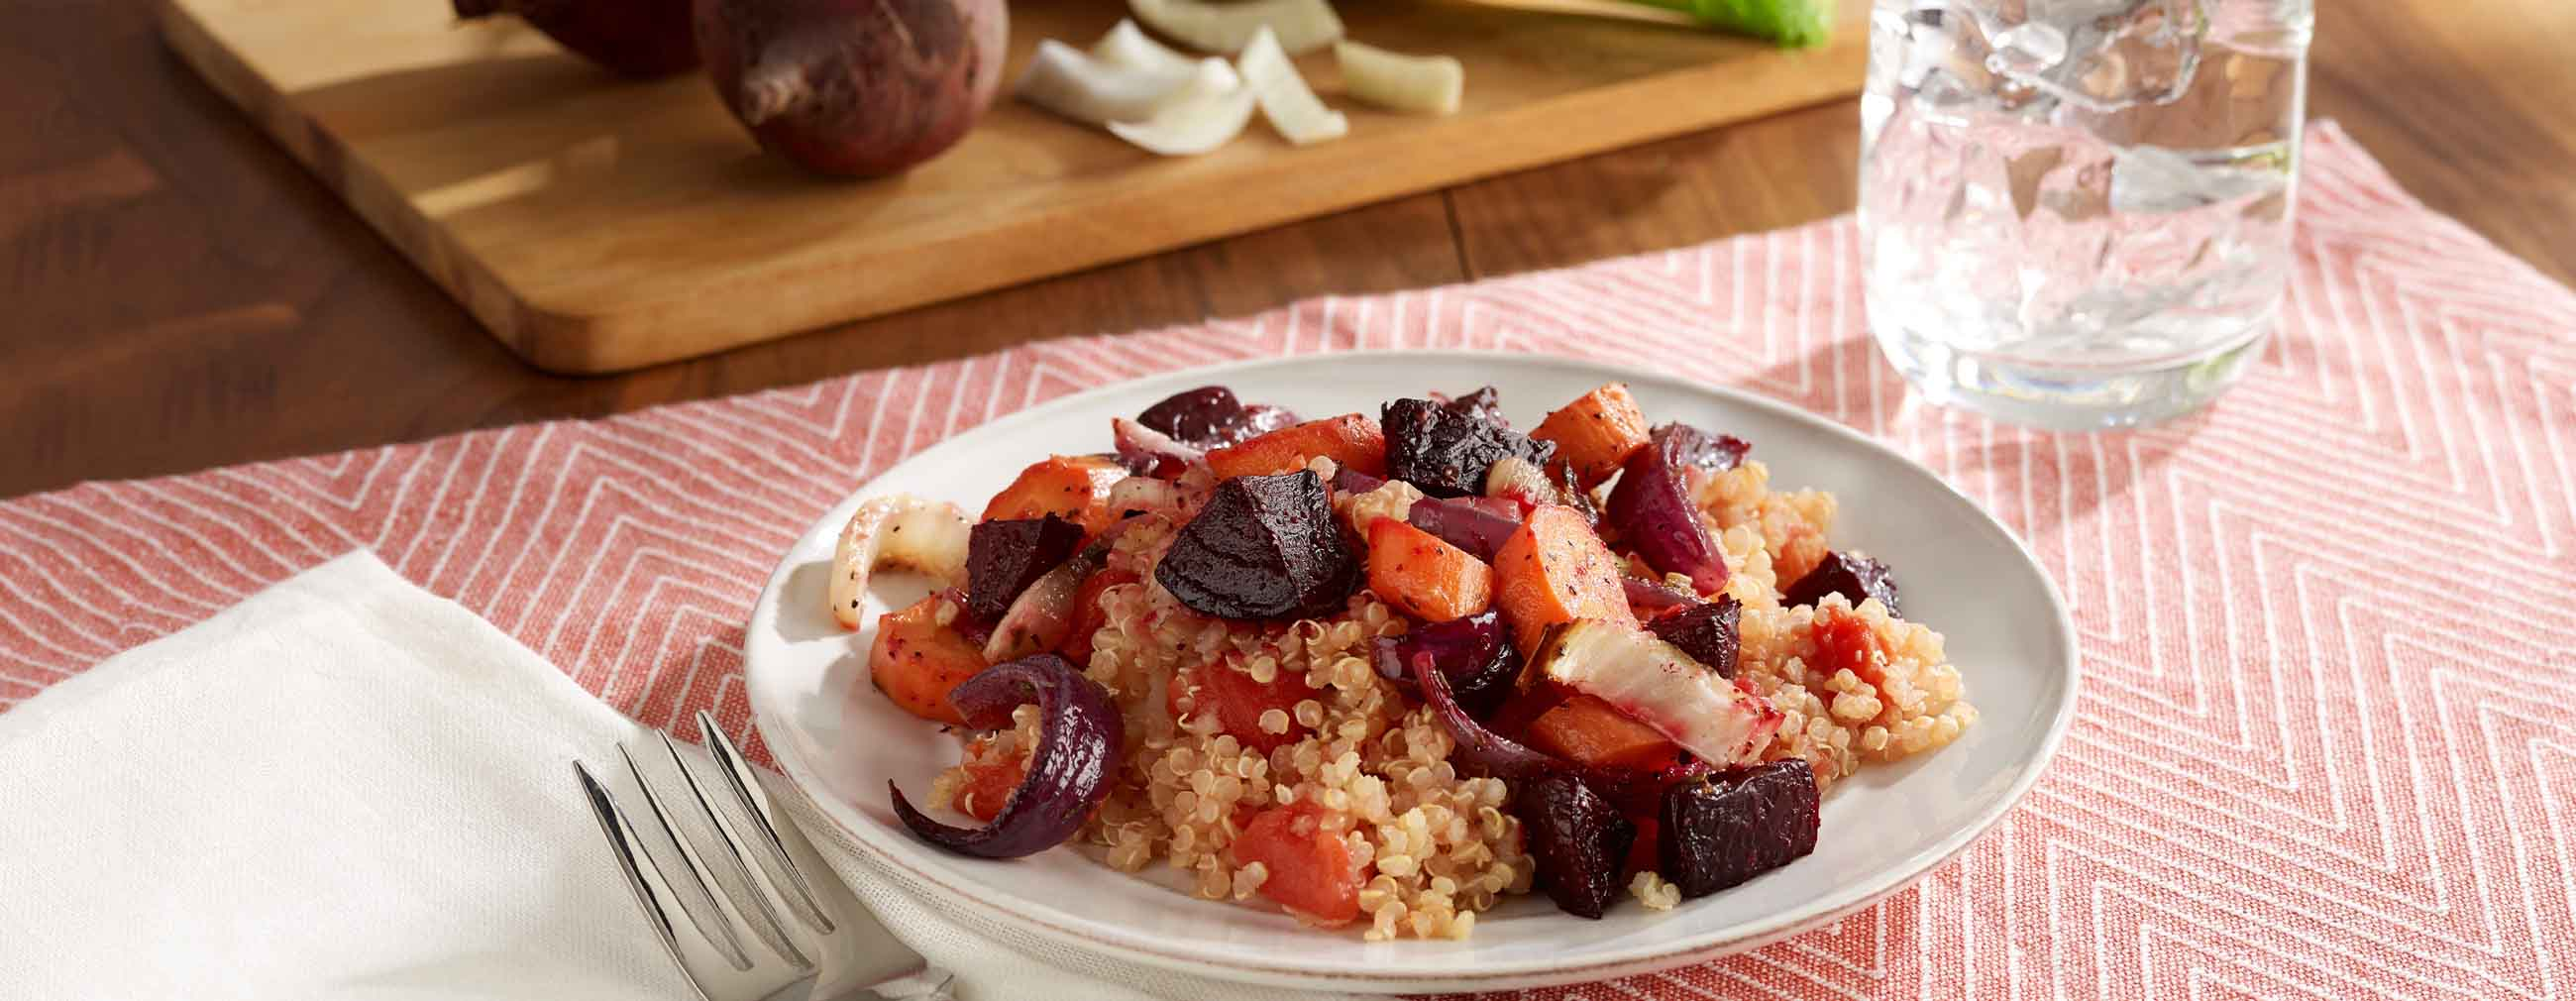 Roasted Beets and Veggies Over Quinoa